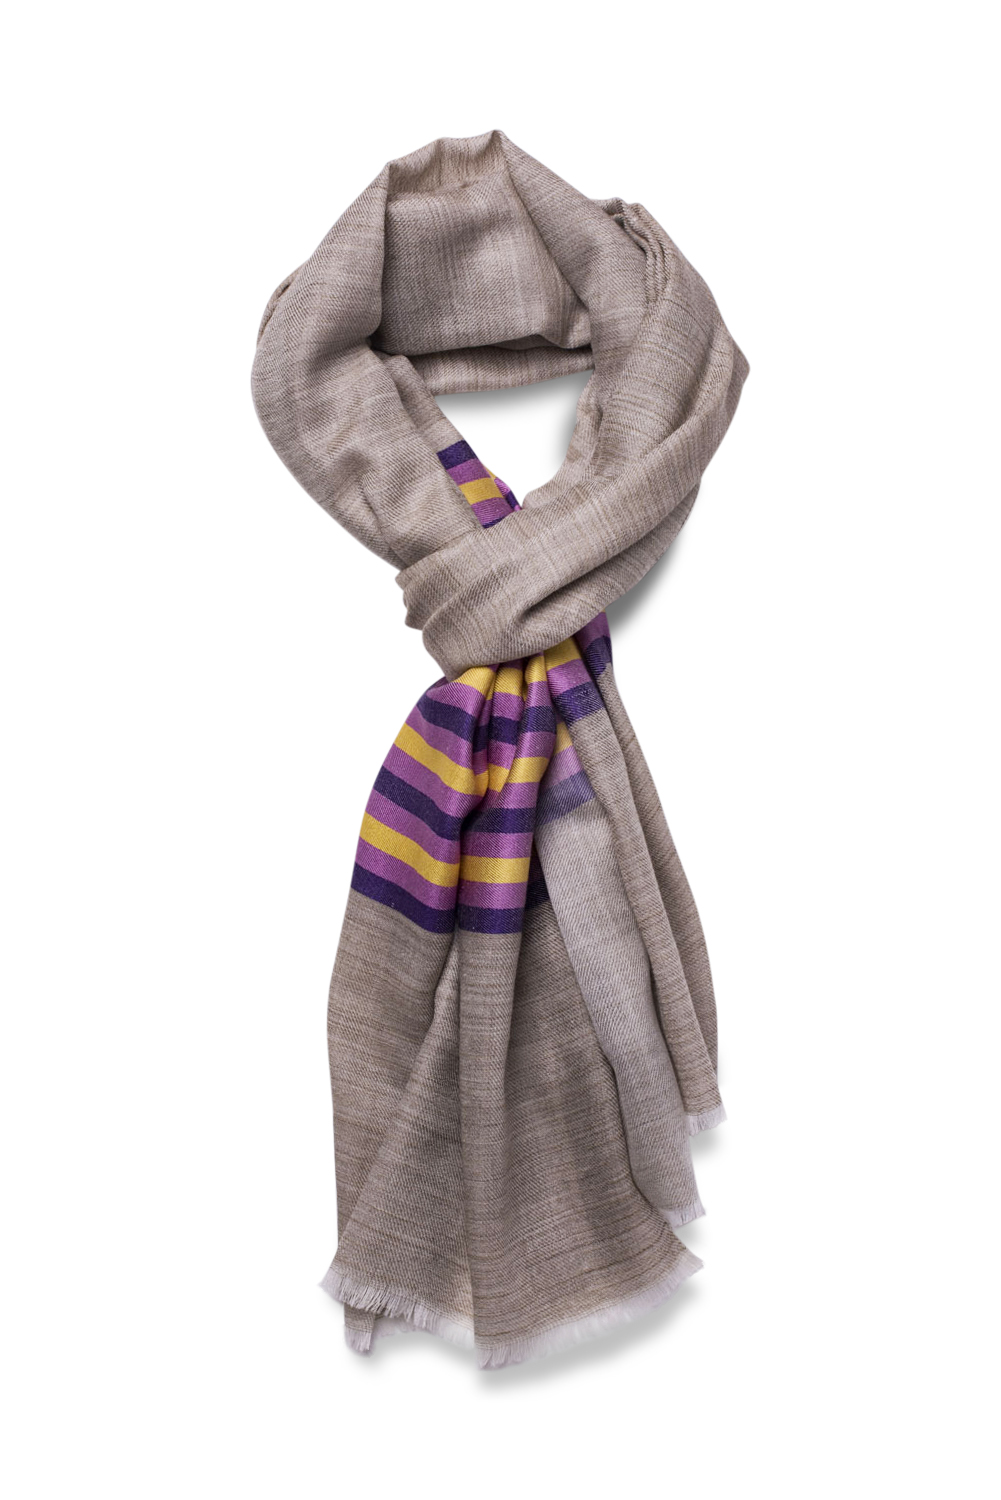 Marino-Silk Blend Banded Scarf in Purple & Yellow